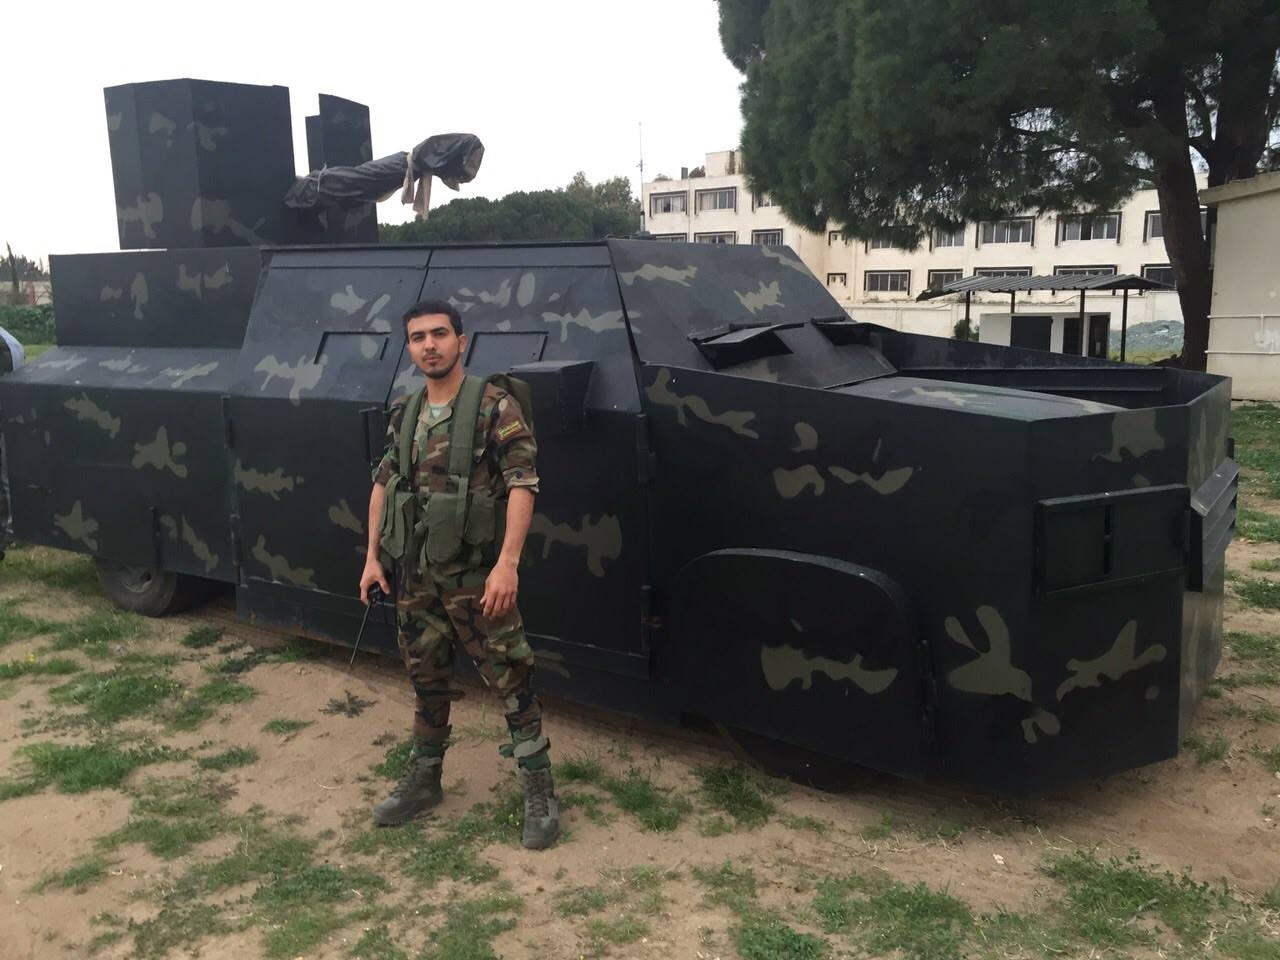 A Syrian fighter stands near an improvised armored personnel carrier.